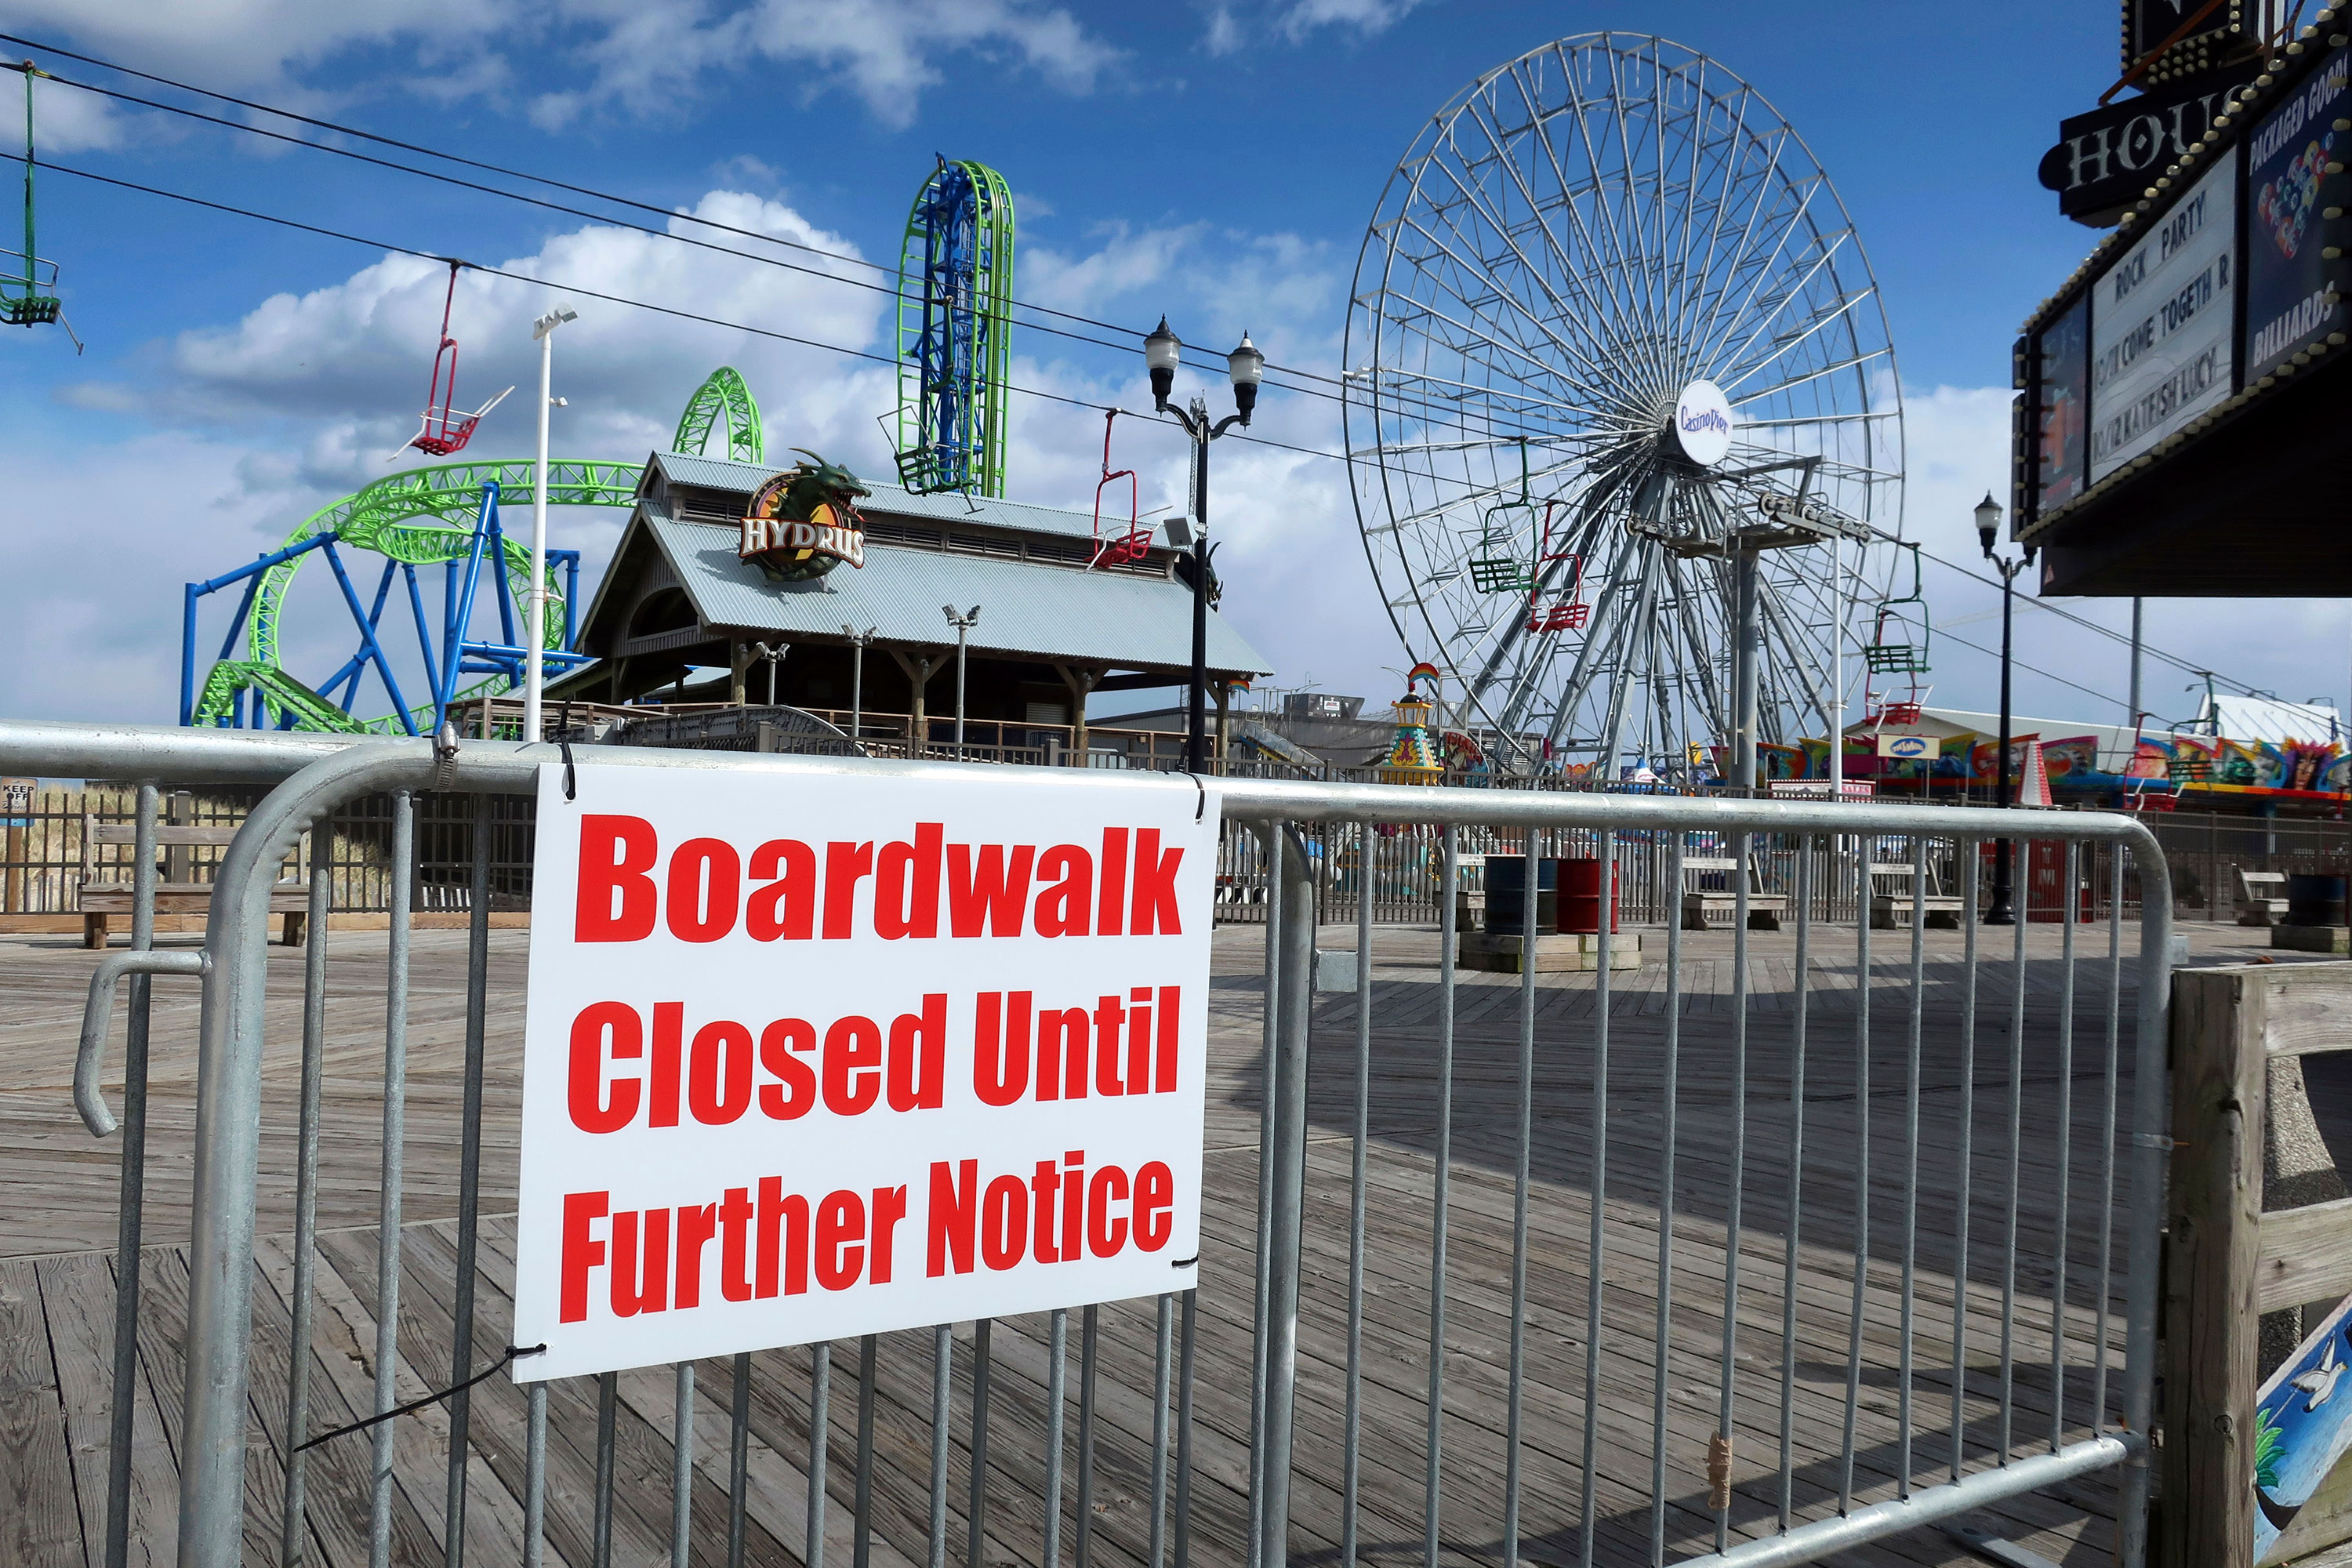 A sign informs visitors that the boardwalk at Seaside Heights in New Jersey is closed on April 10.